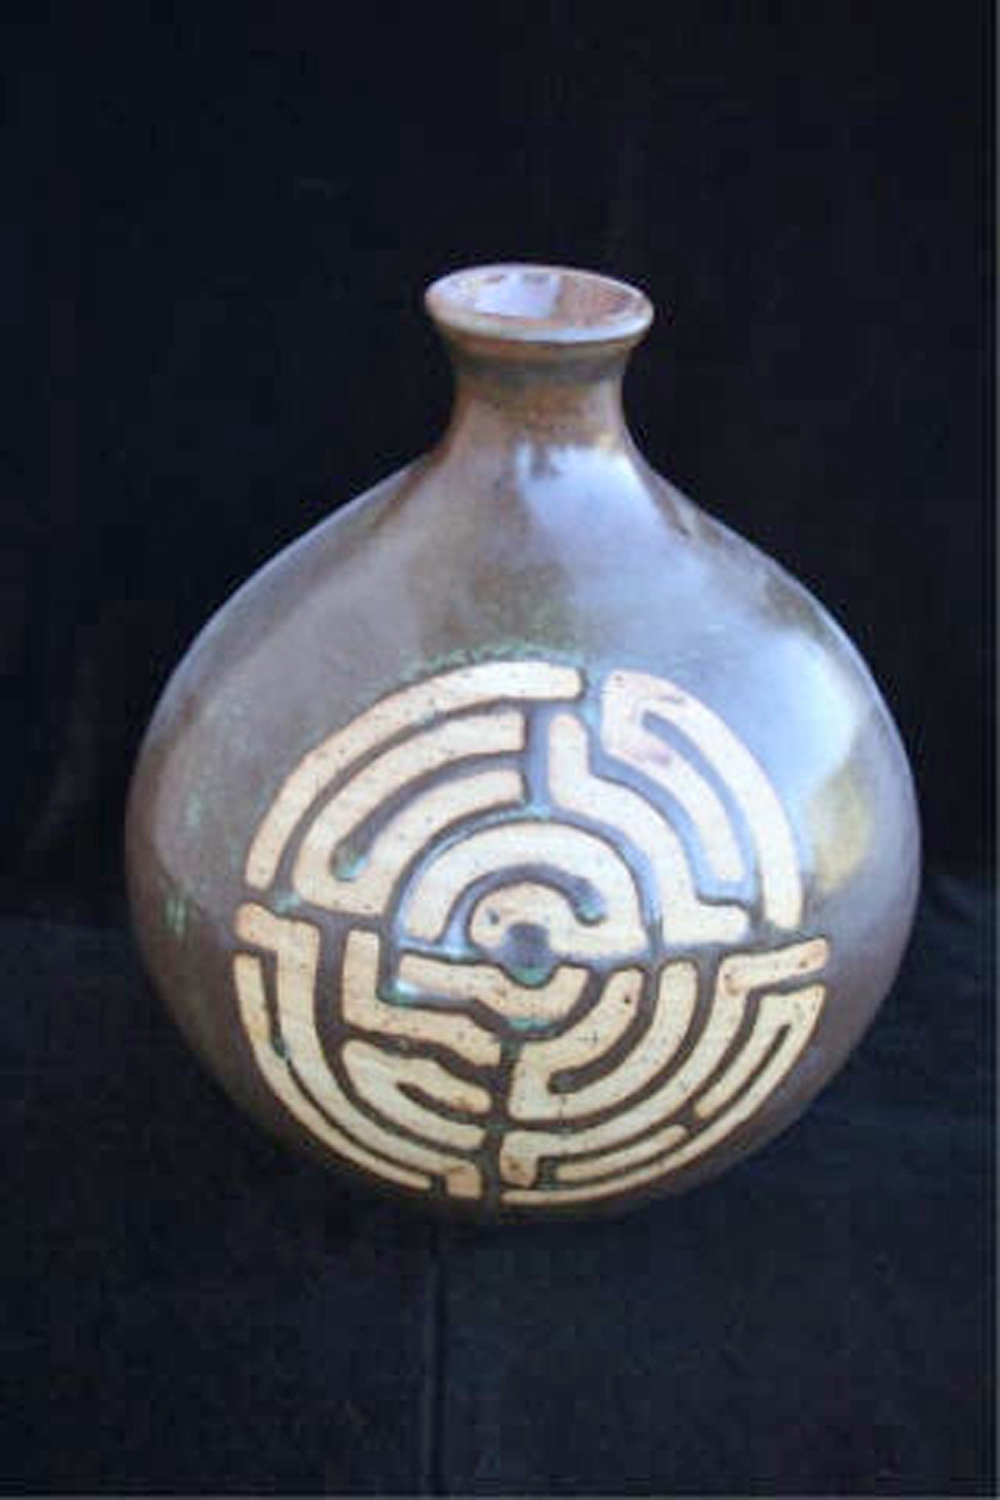 "Labyrinth in Iron  , 2007, wheel-thrown stoneware Fired at cone 6 oxidation,  8 1/2"" h x 7 1/2 dia Collection of Mrs. Andrienne M. Kravchuk, San Diego, CA"